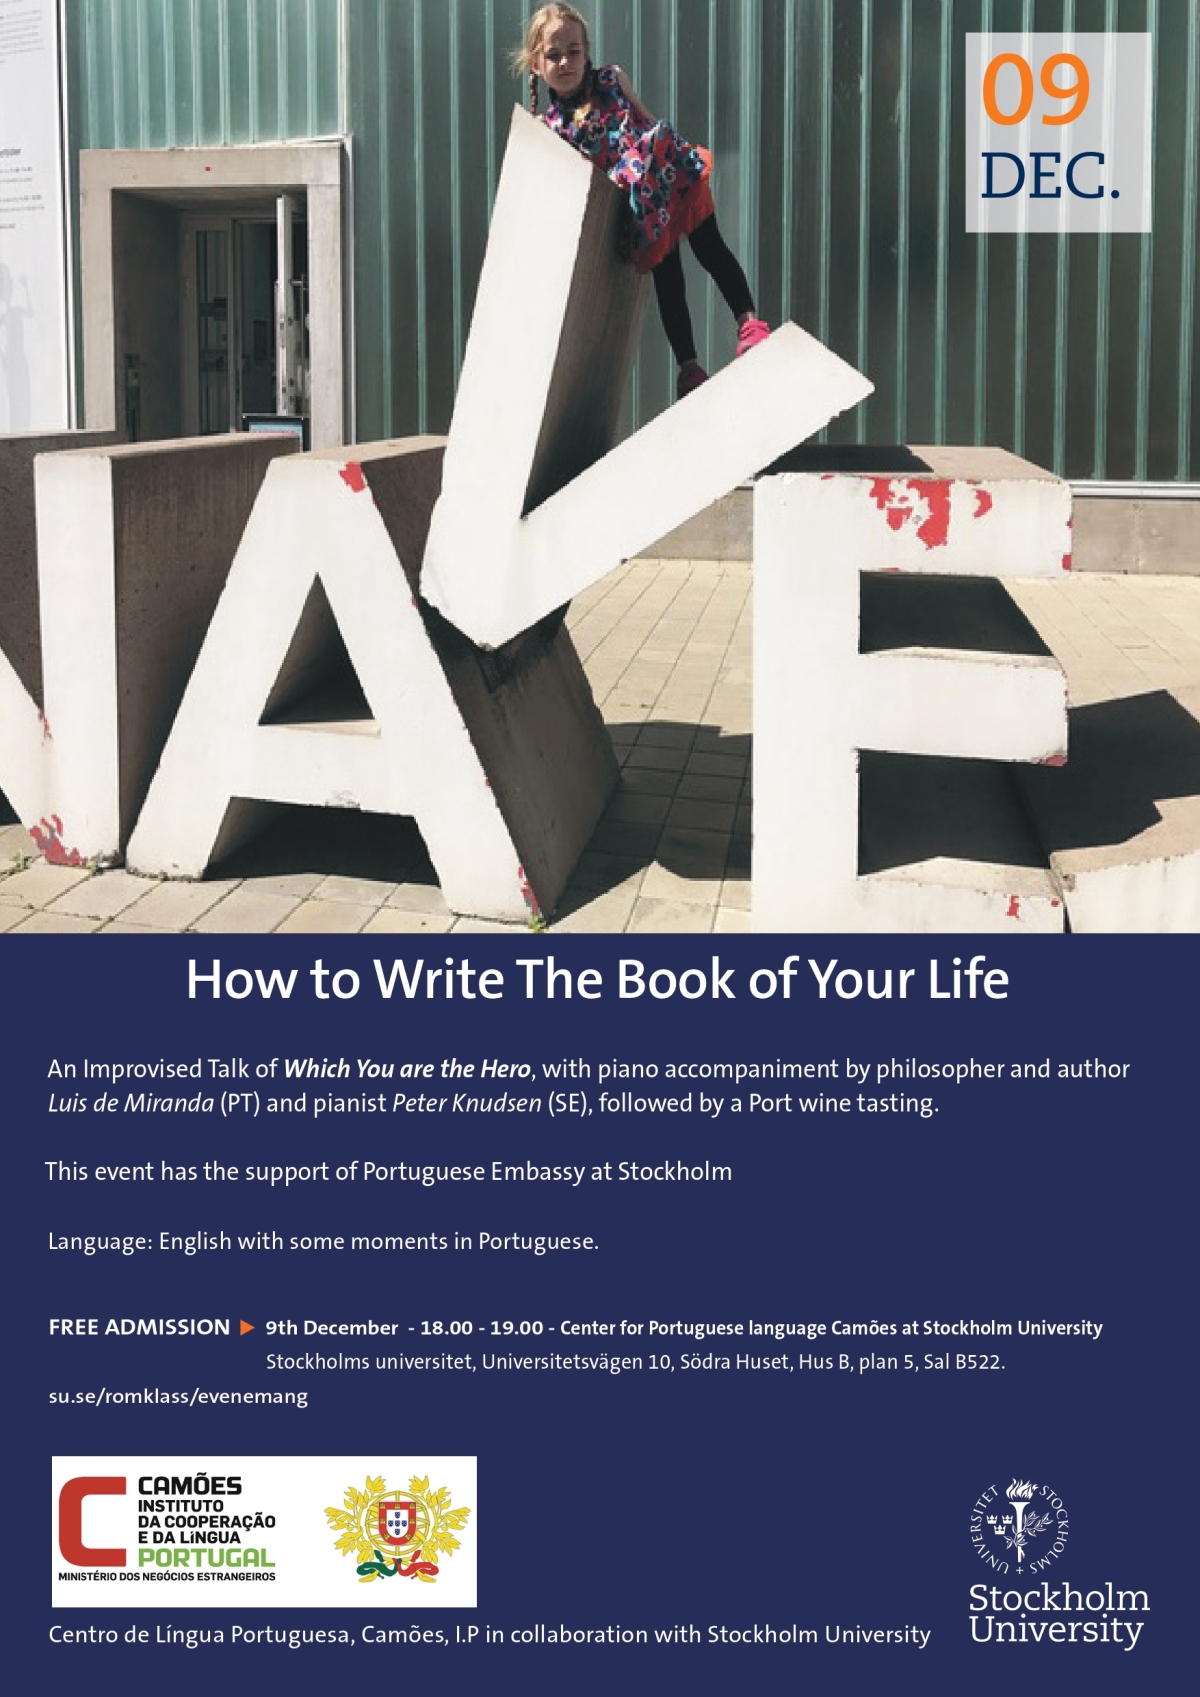 How to Write The Book of Your Life, An Improvised MusicalTalk